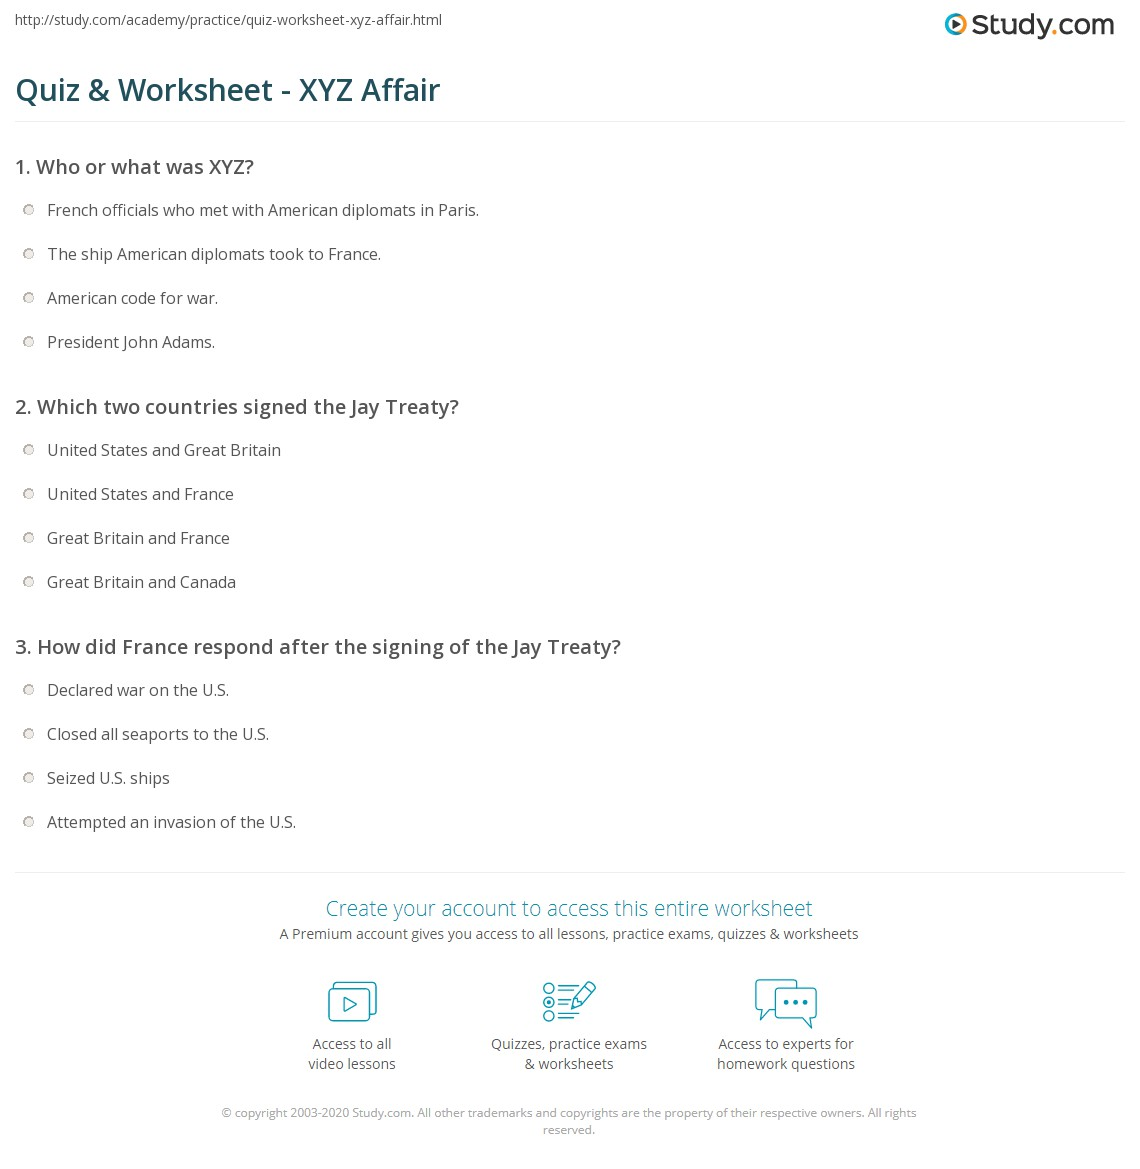 xyz affair worksheet the best and most comprehensive worksheets. Black Bedroom Furniture Sets. Home Design Ideas